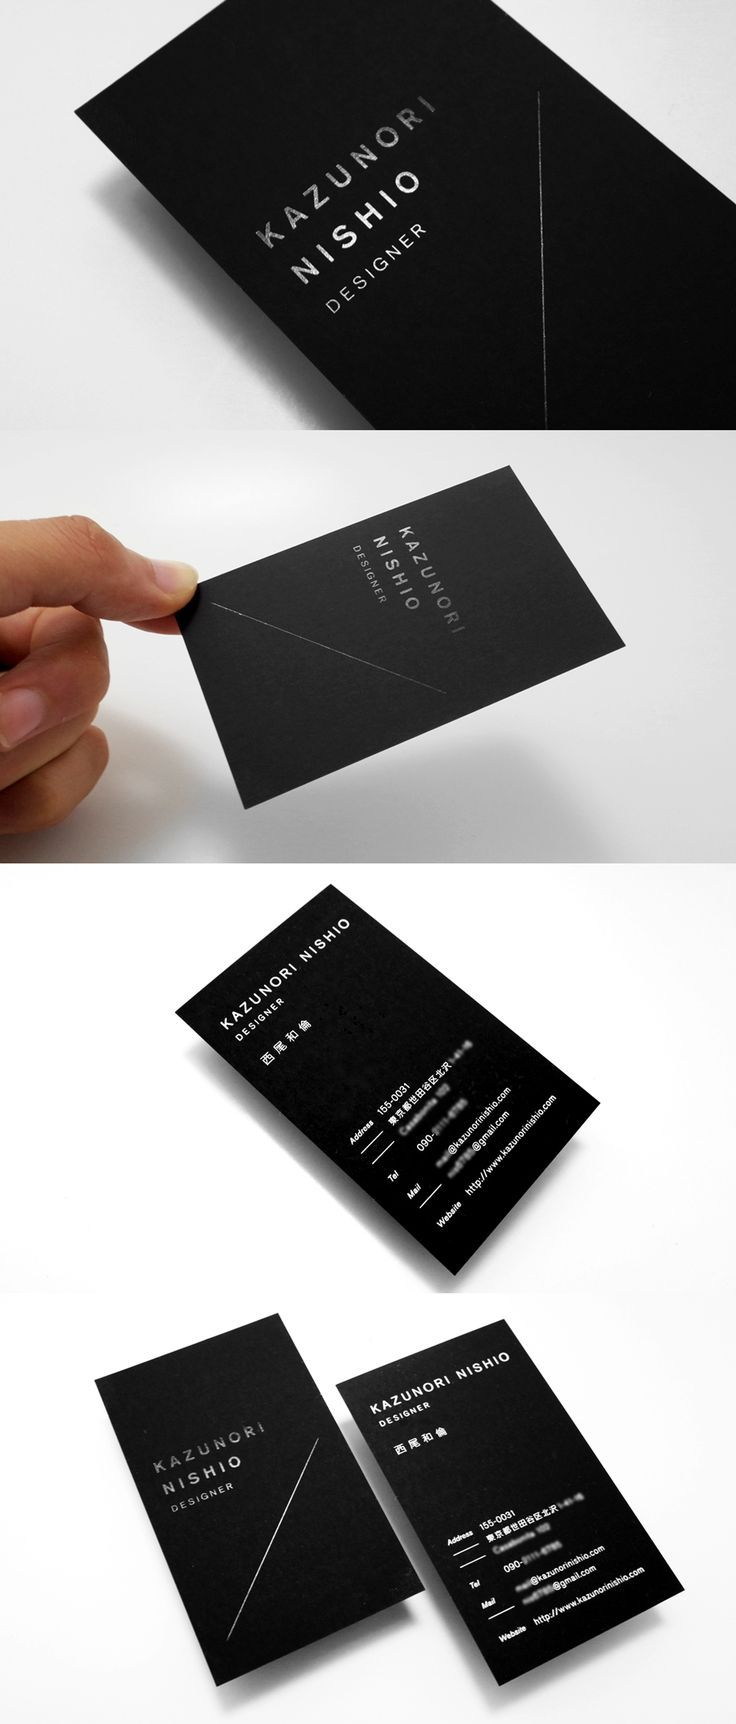 Unconventional business cards gallery free business cards unconventional business cards gallery free business cards unconventional business cards images free business cards 30 unconventional magicingreecefo Gallery